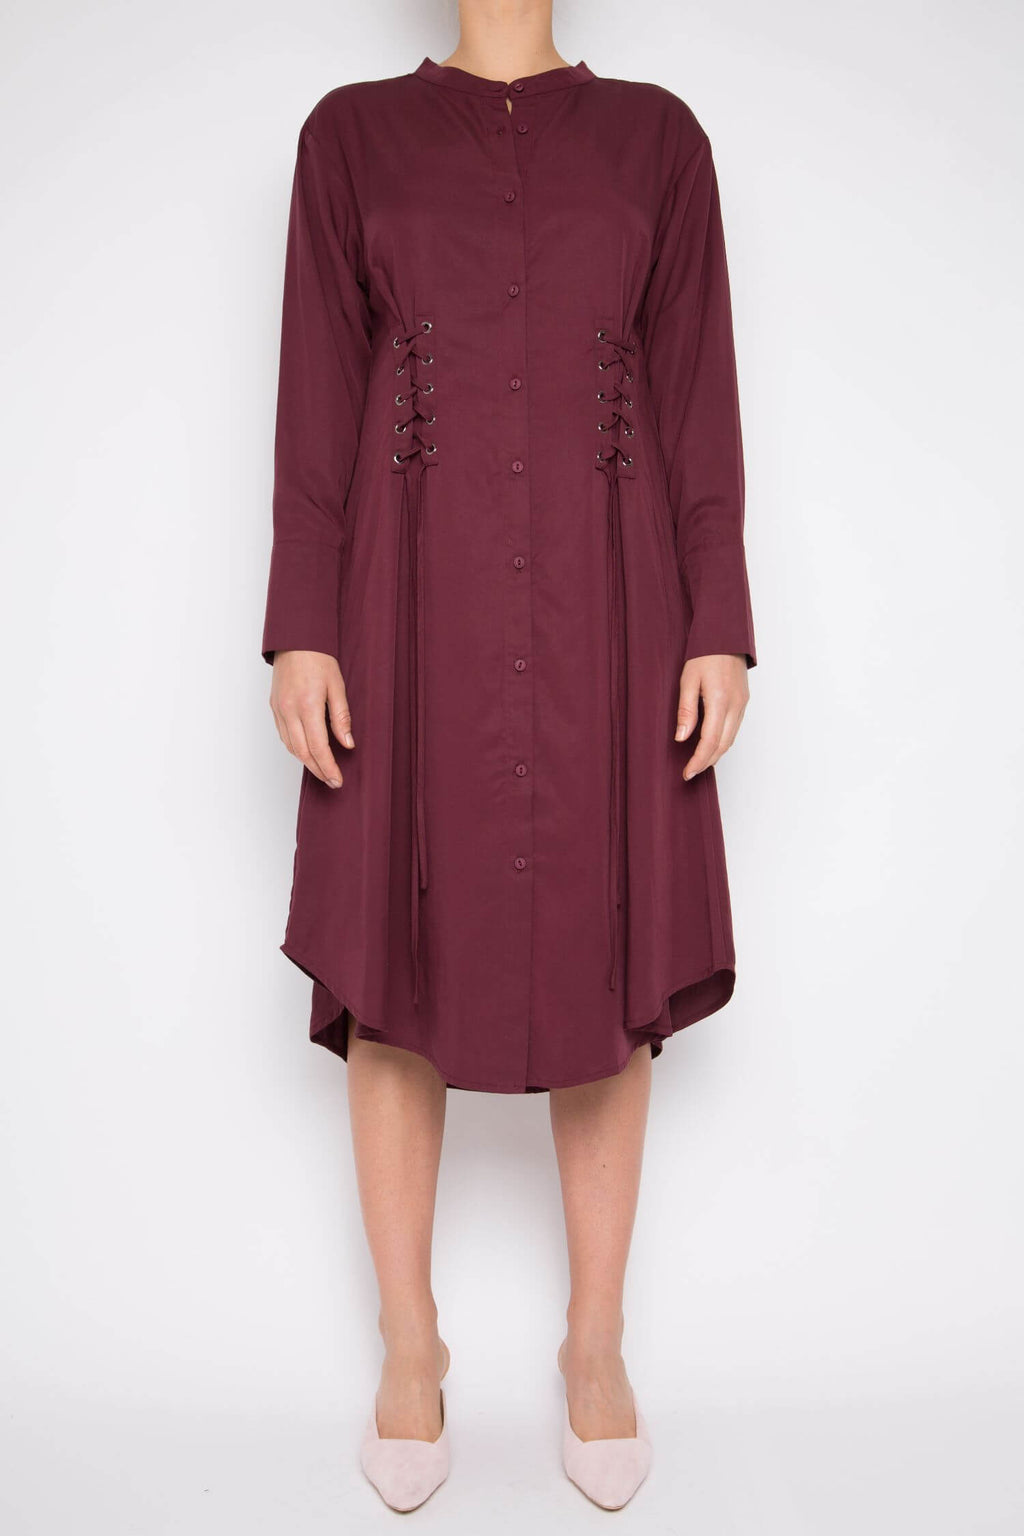 Muyu Dress in Rosewood